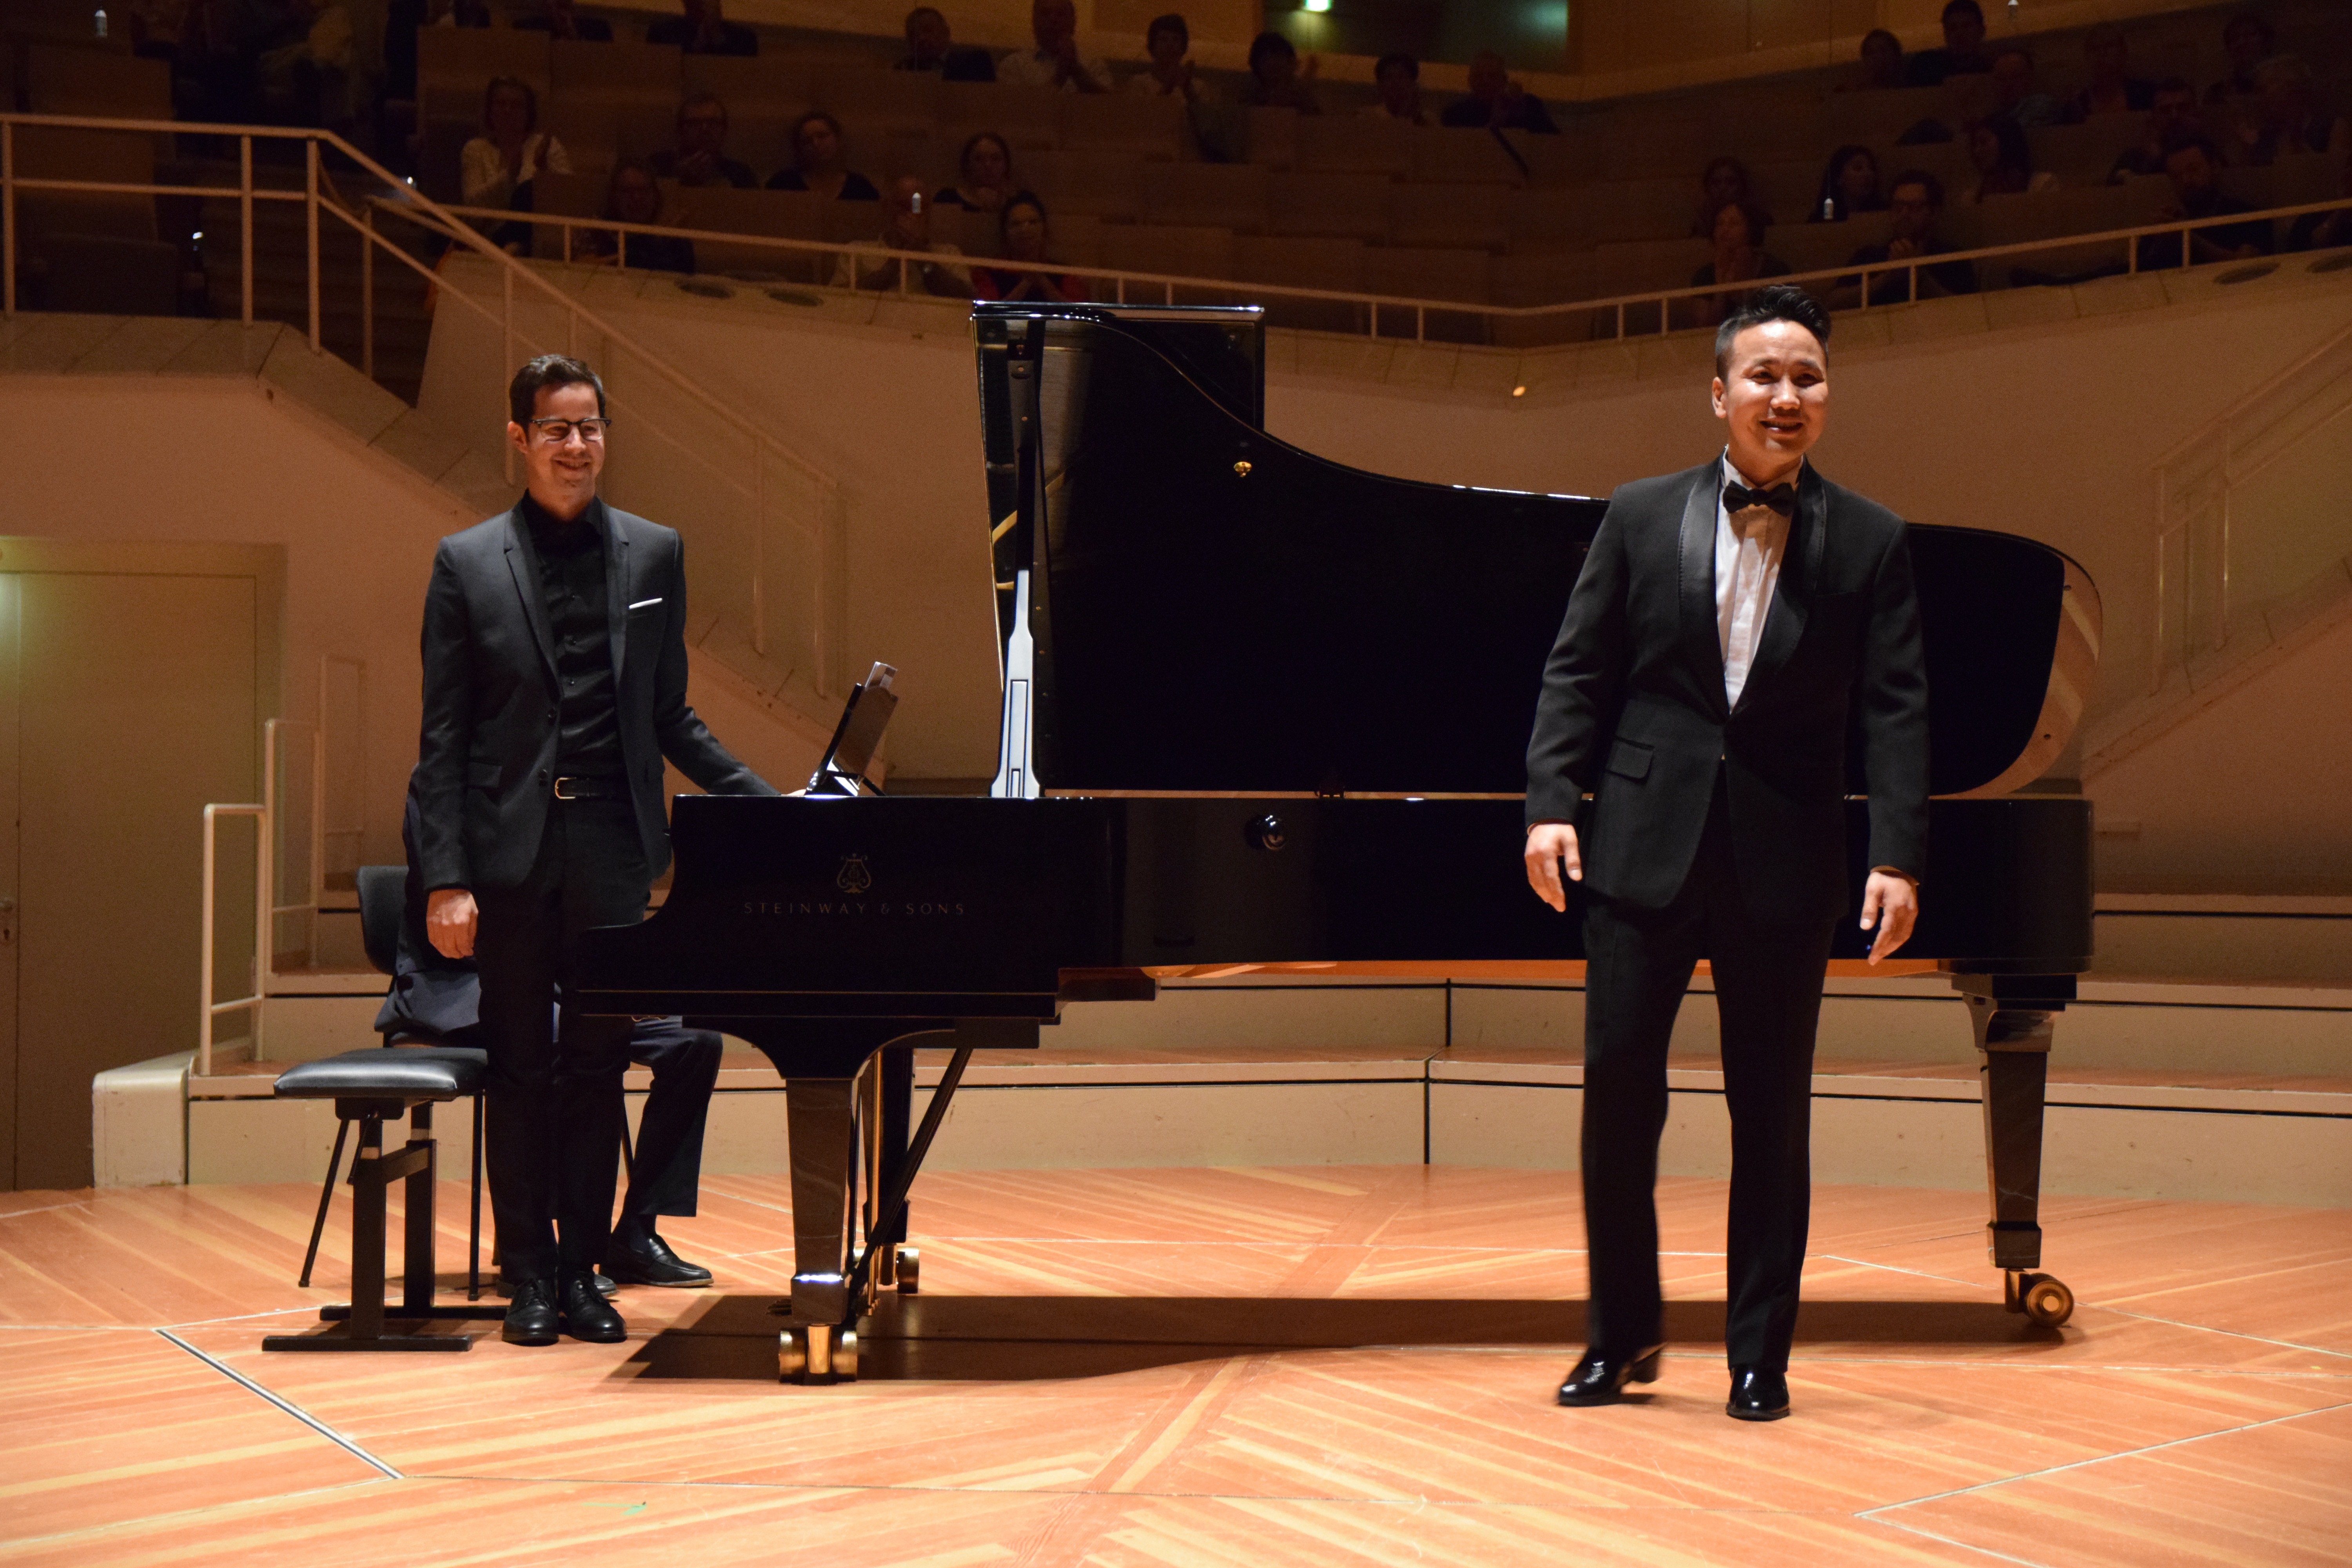 berliner music competition 26